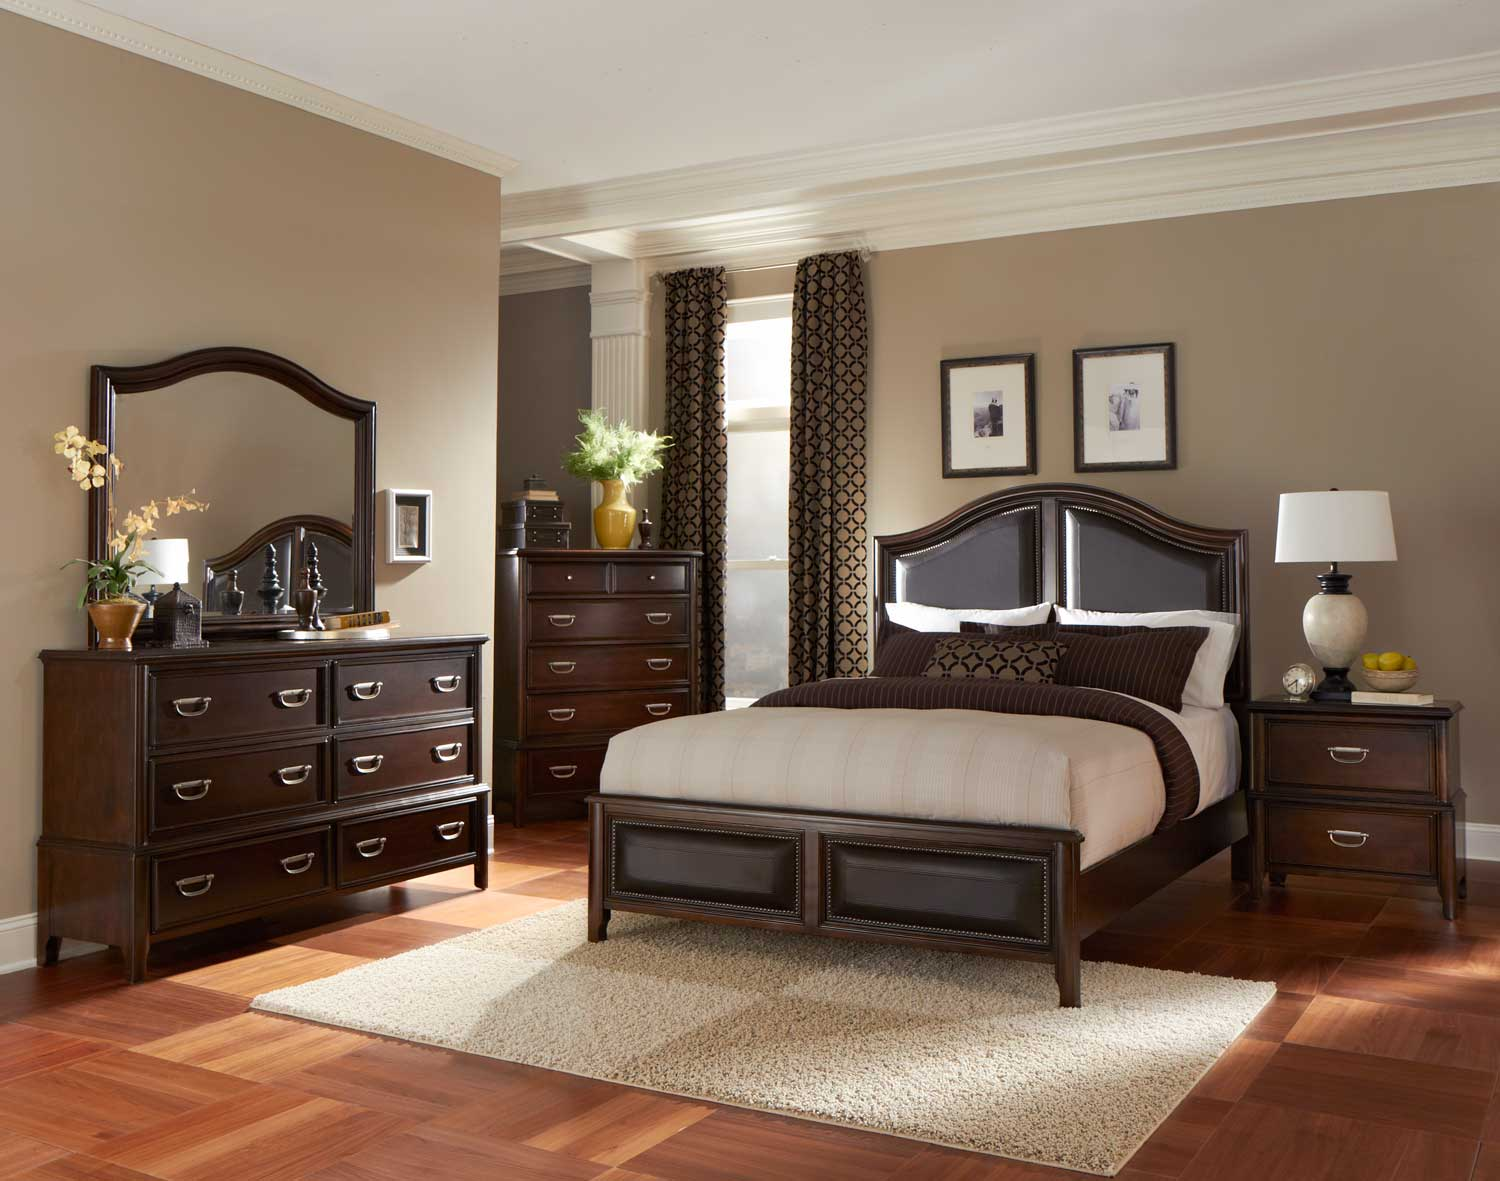 Homelegance Beaux Low Profile Bedroom Set with Vinyl Insert - Dark ...